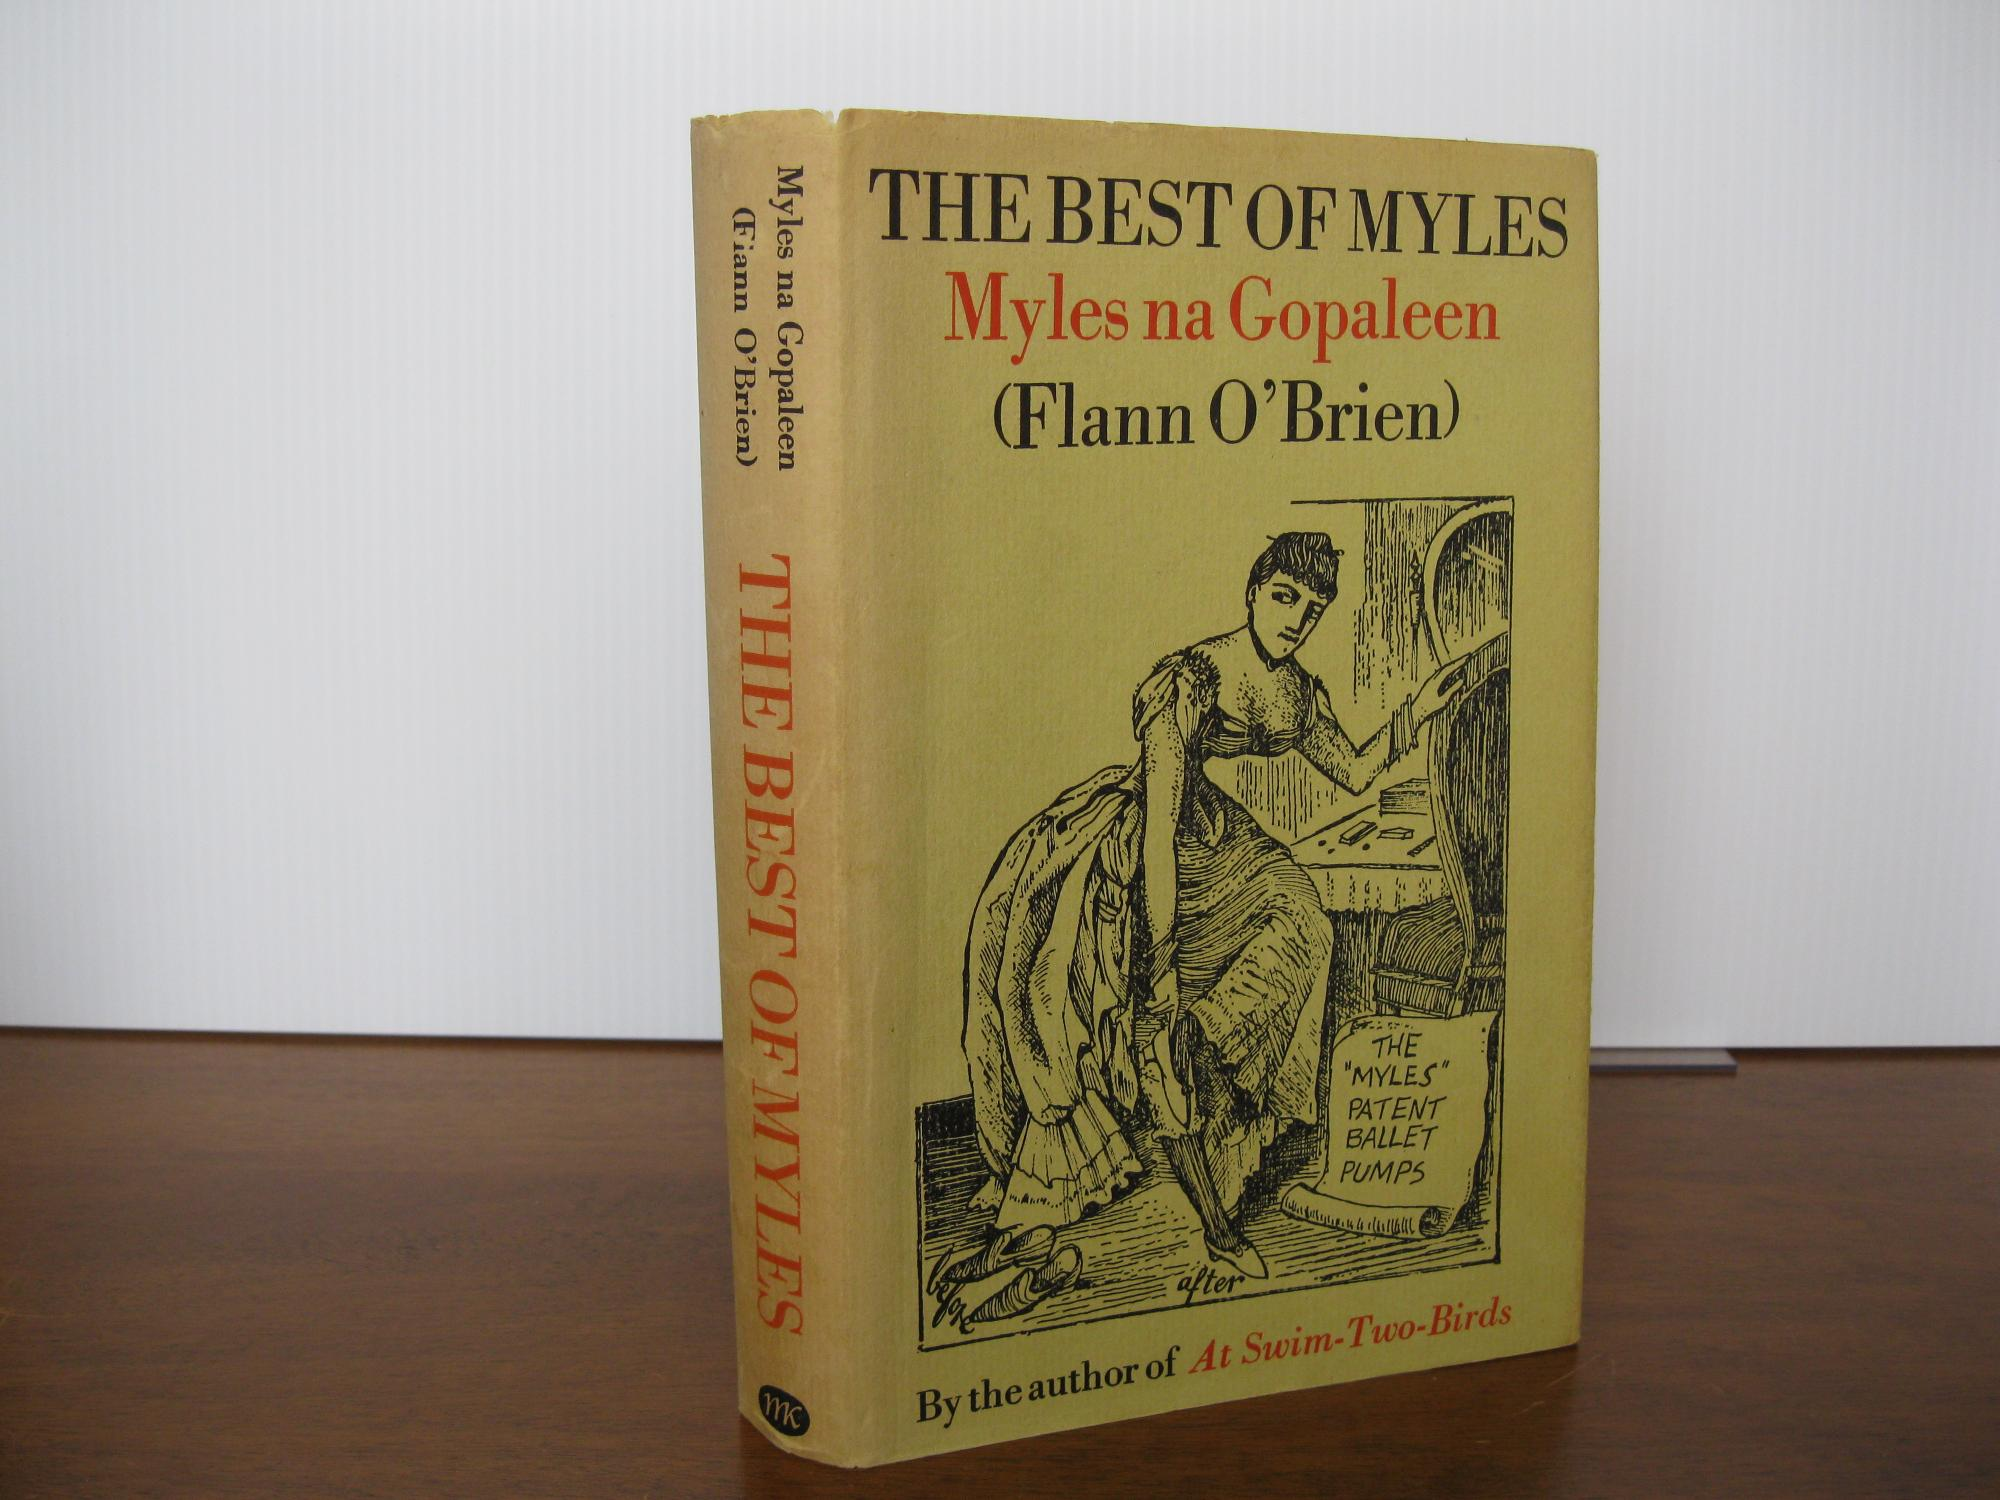 THE_BEST_OF_MYLES:_A_SELECTION_FROM_'CRUISKEEN_LAWN'_O'BRIEN,_FLANN_(NA_GOPALEEN,_MYLES)_[Very_Good]_[Hardcover]